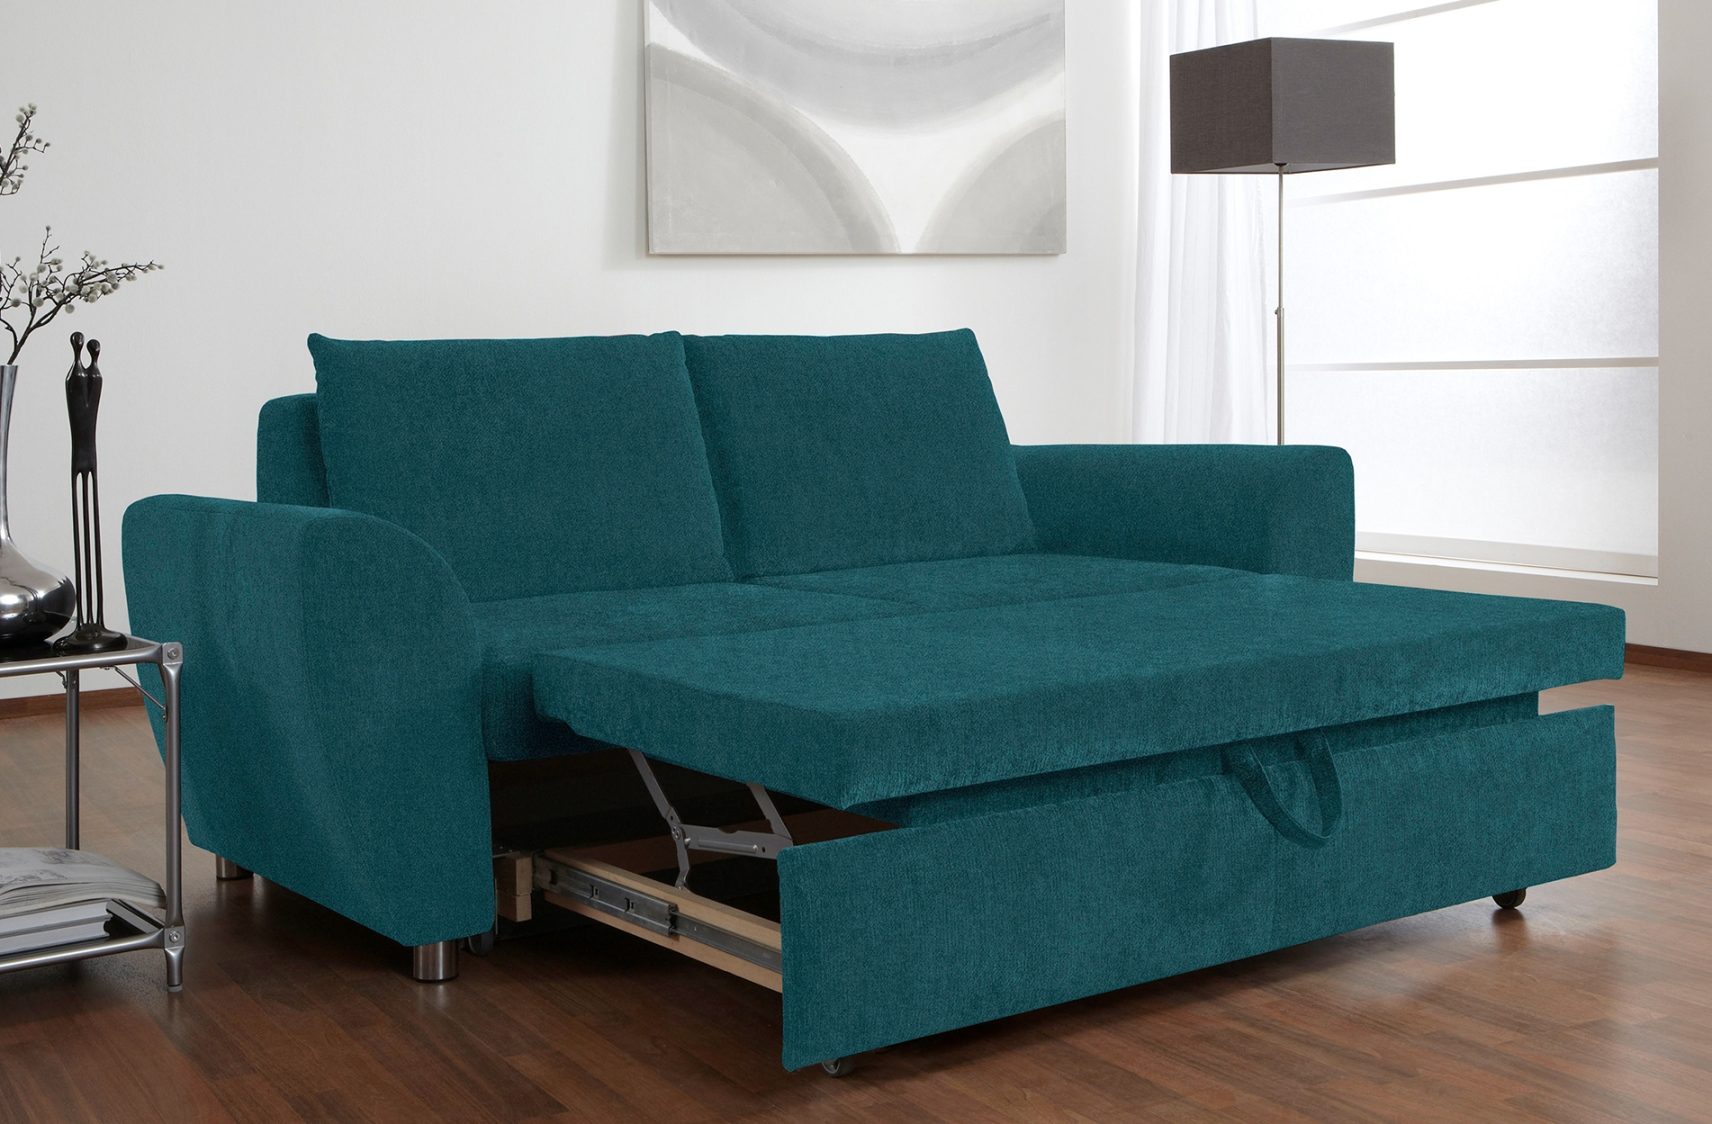 Essen Sleeper Sofa The Best Pull Out Bed By Nordholtz